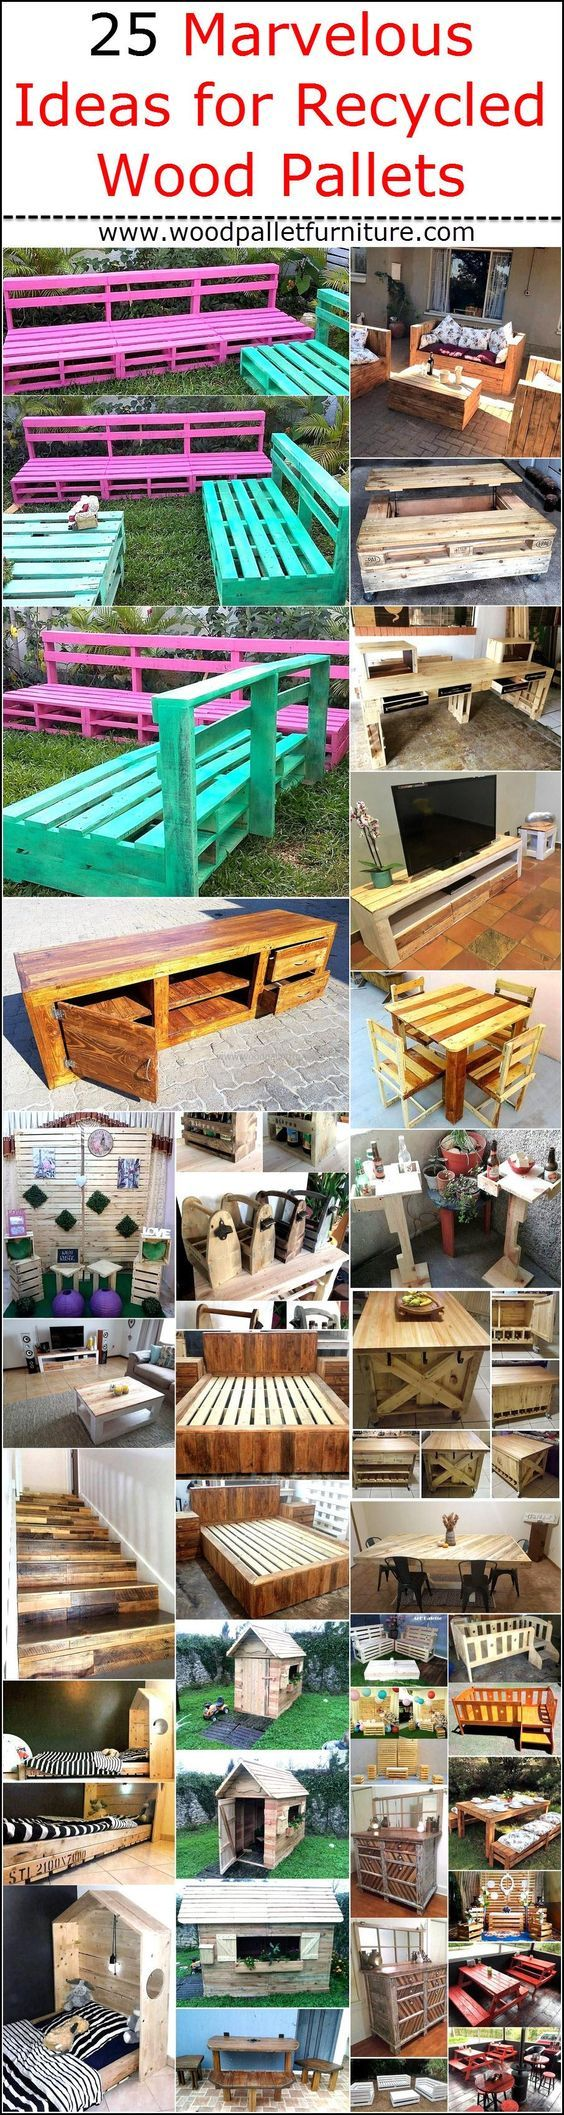 25 Marvelous Ideas for Recycled Wood Pallets #oldpalletsforcrafting